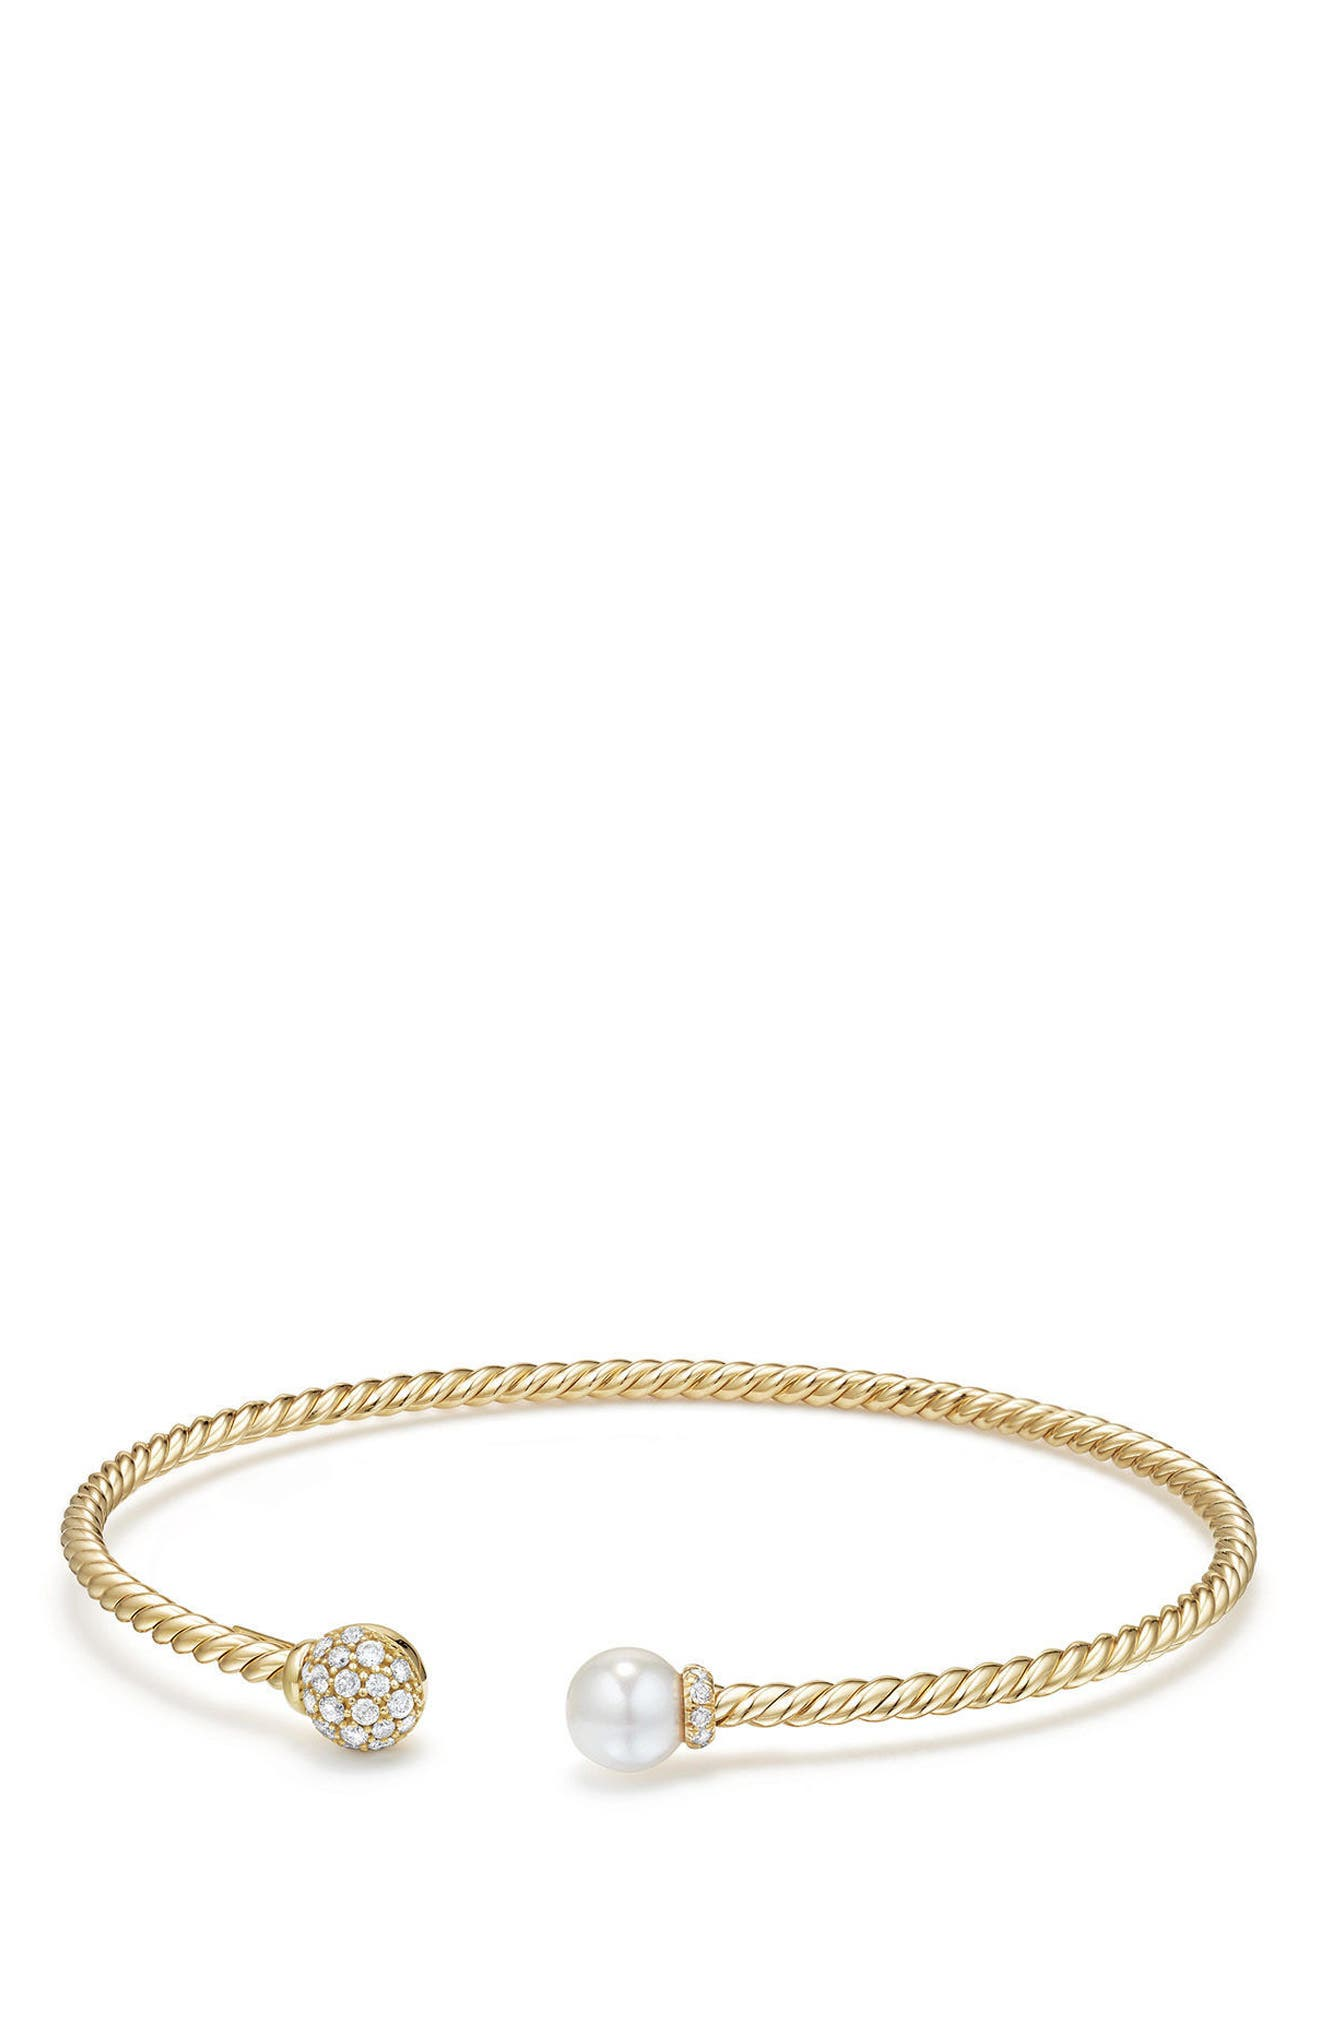 Solari Bead & Pearl Bracelet with Diamonds in 18K Gold,                         Main,                         color, YELLOW GOLD/ DIAMOND/ PEARL